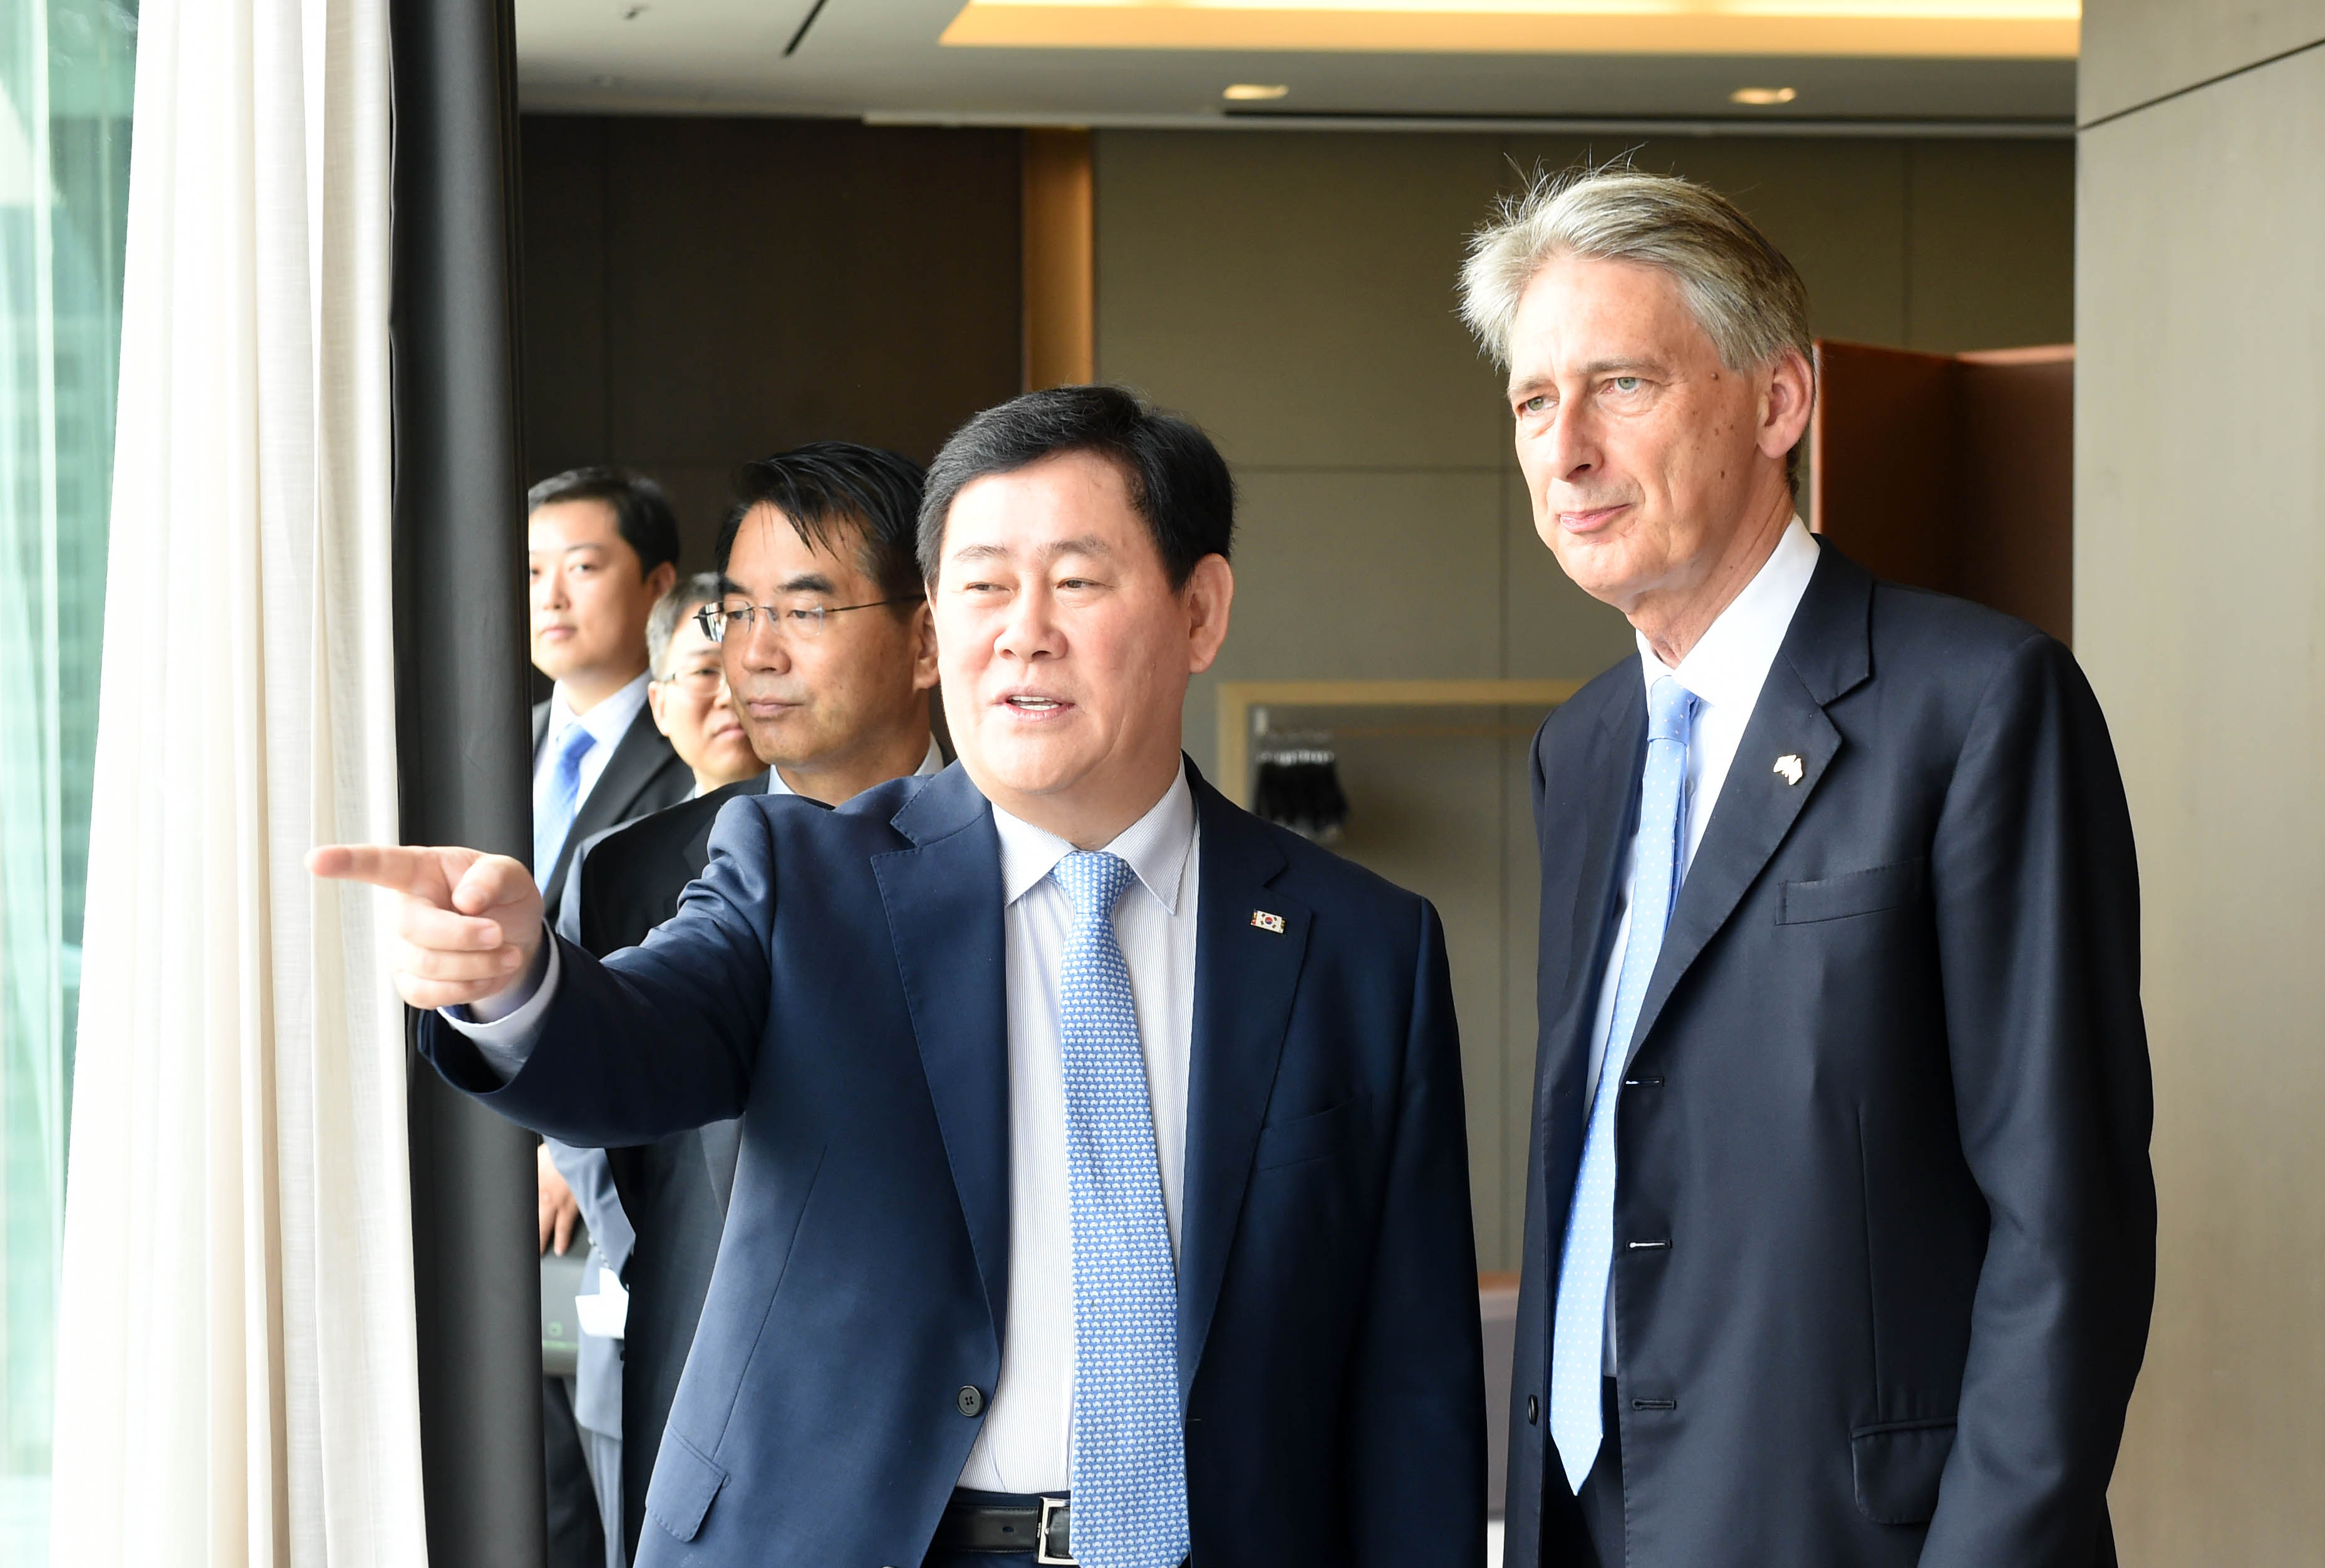 Deputy Prime Minister Choi meets with UK Foreign Secretary Philip Hammond